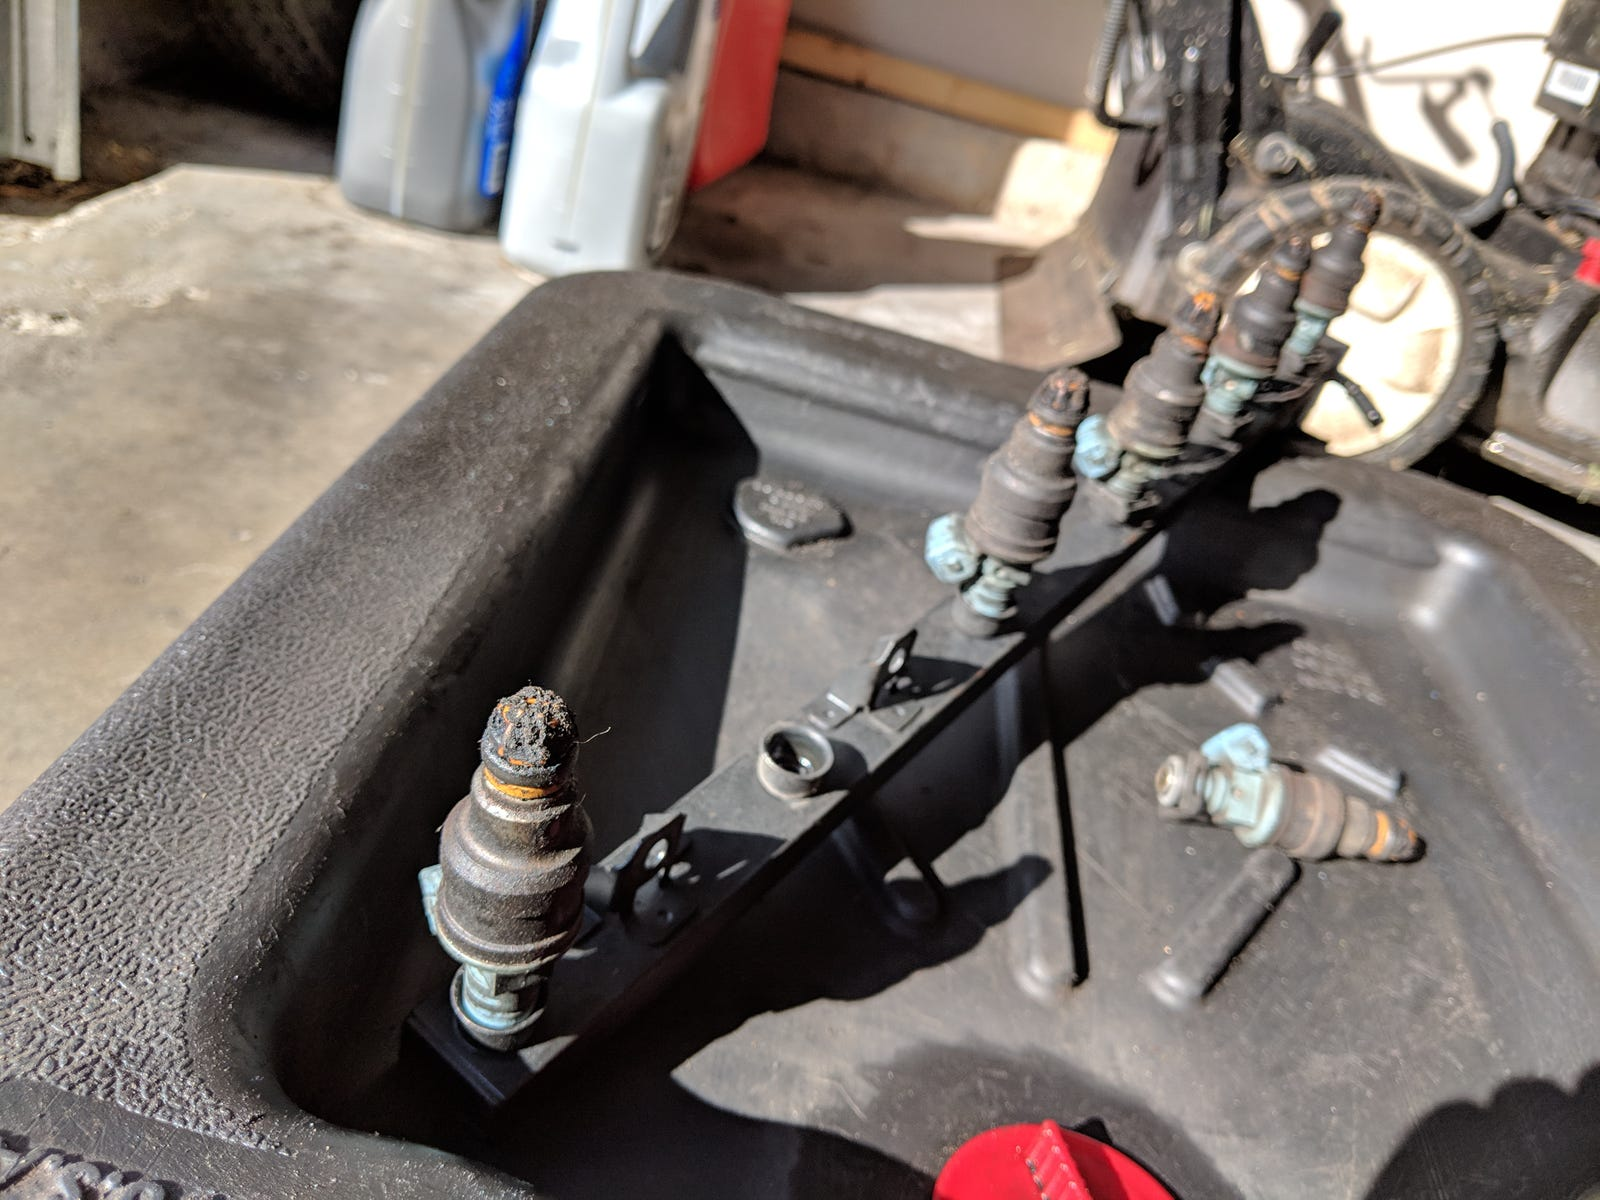 Those are some extremely filthy fuel injectors.